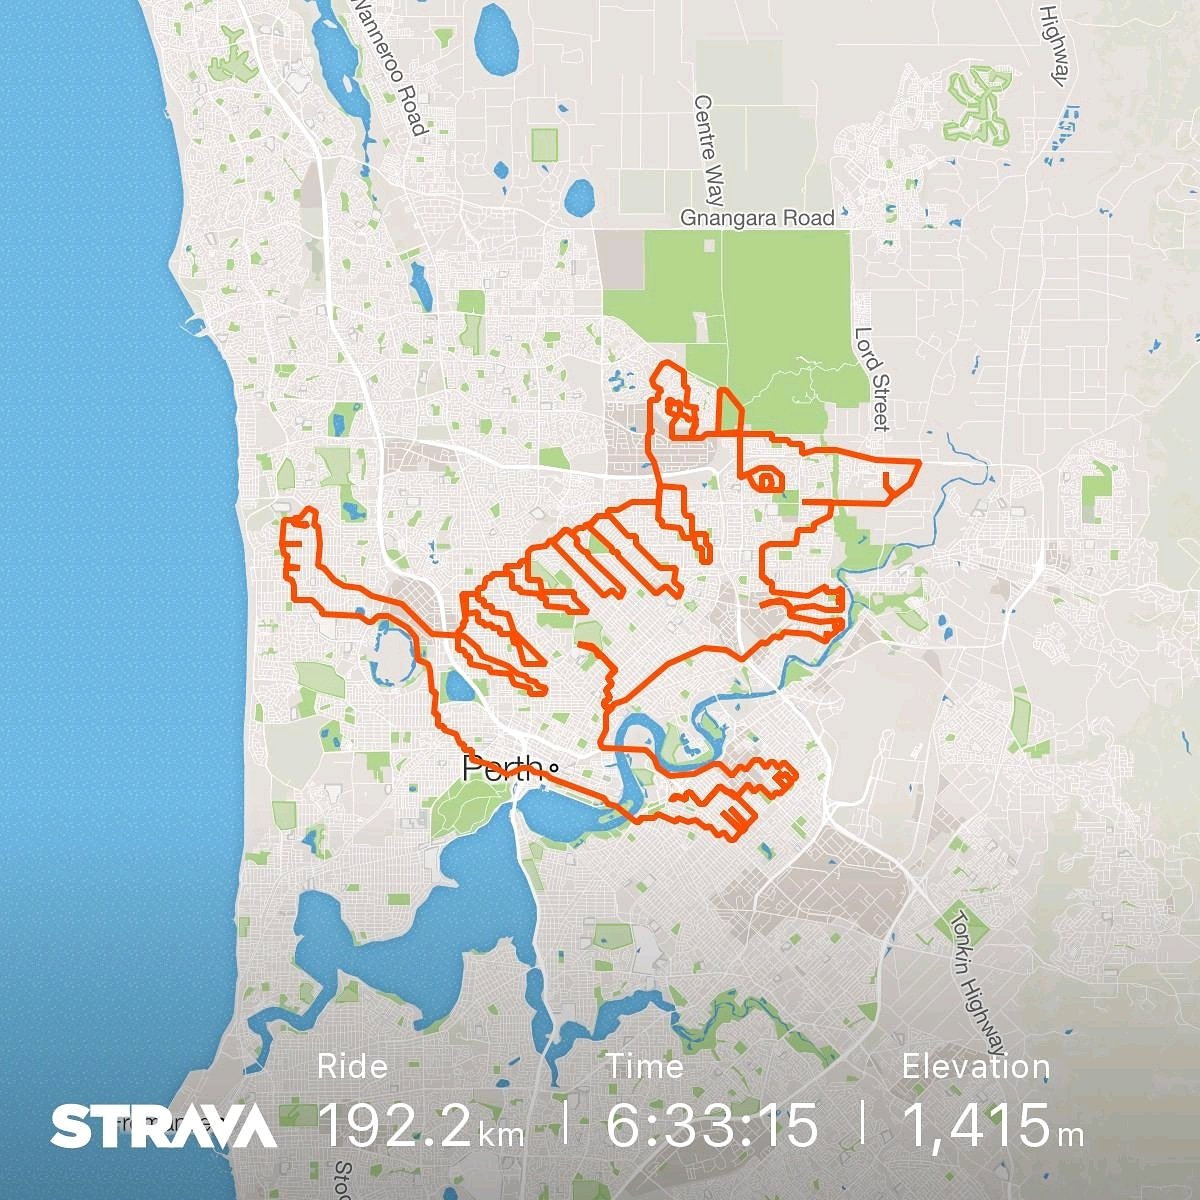 Terrible maps terriblemaps twitter and i rode our bikes to draw a goat over our city 12 months later we decided to draw a numbat via reddit user jenbonezpicitterptlqysqeyv gumiabroncs Image collections